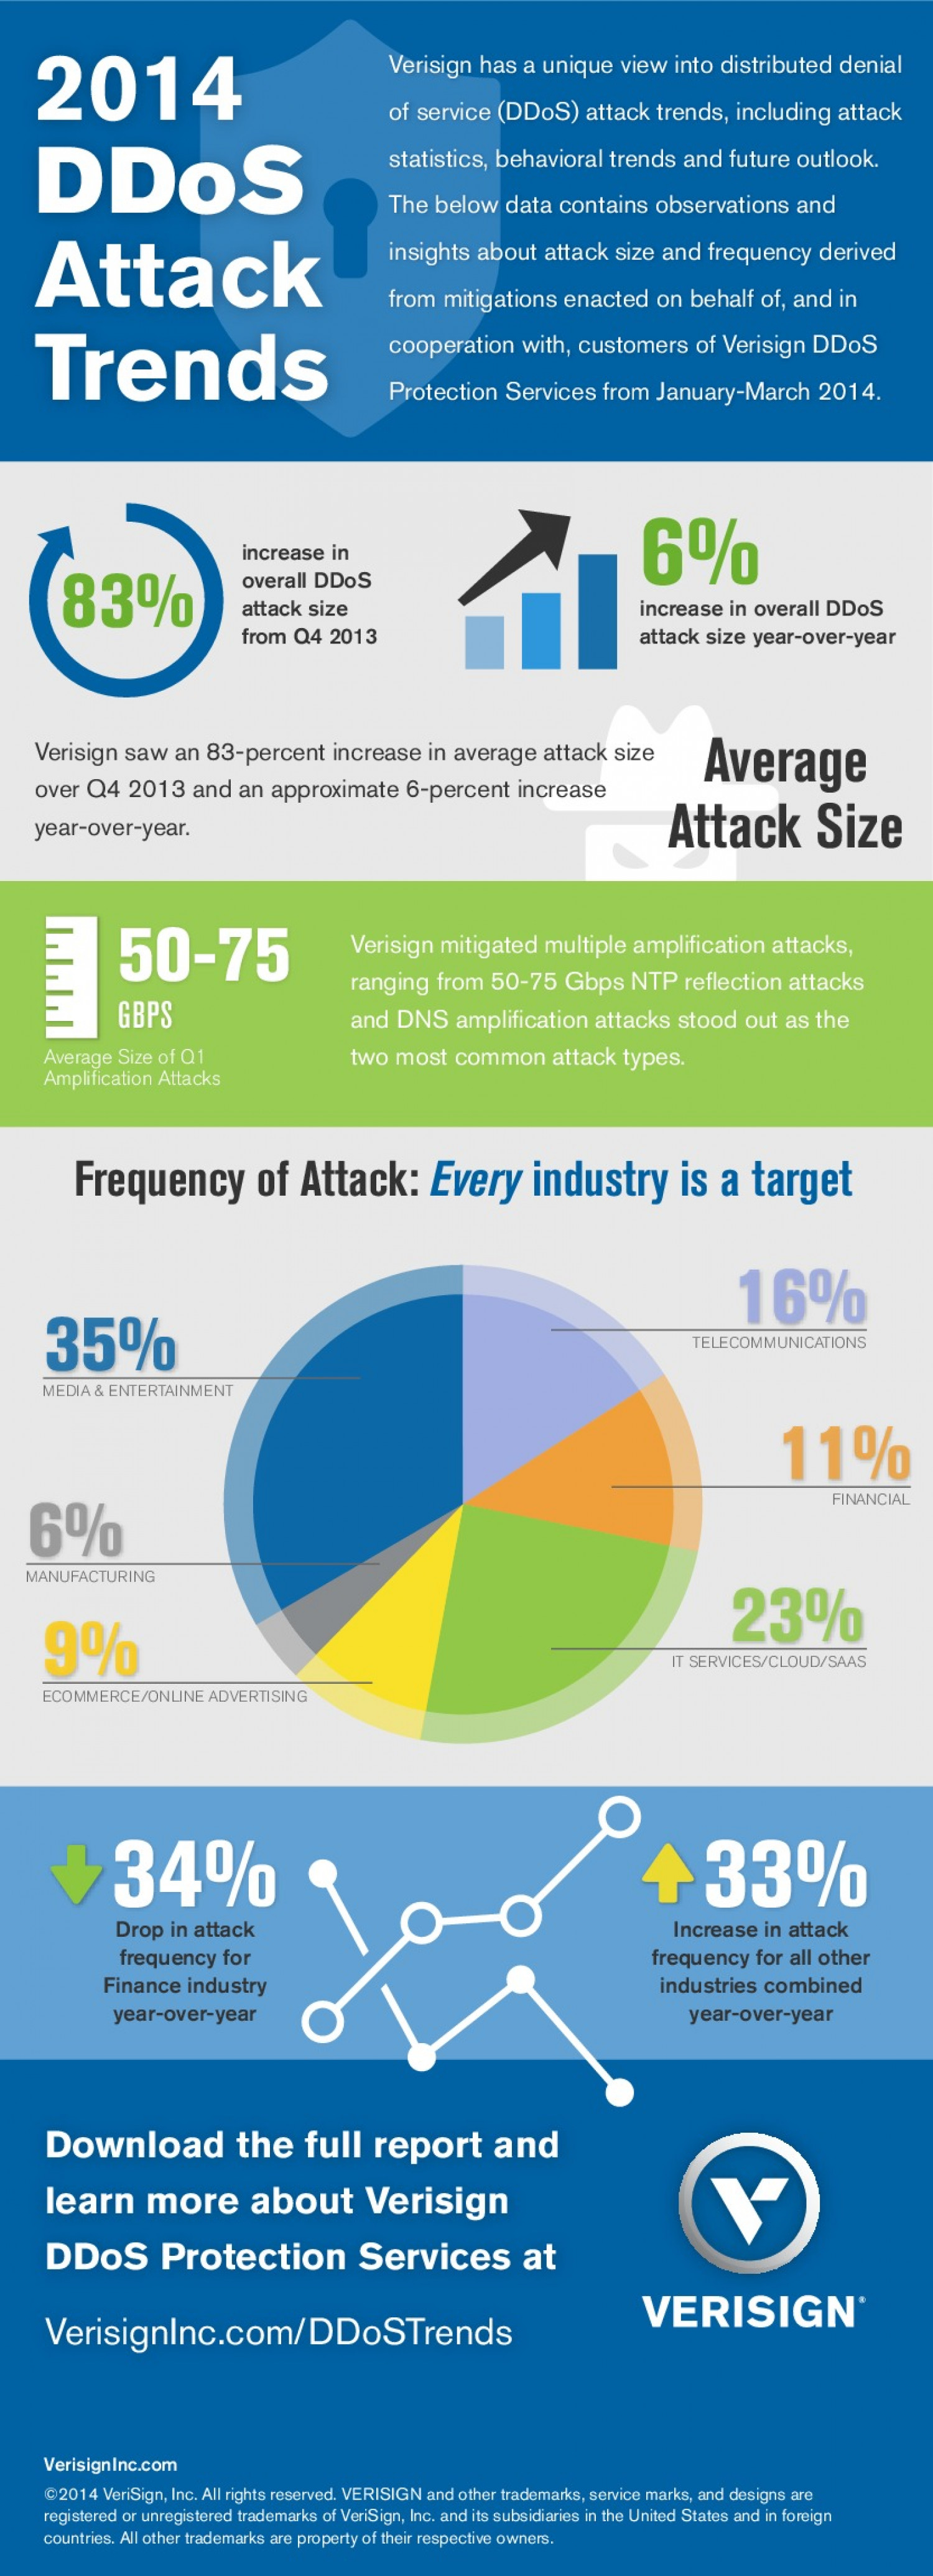 2014 DDoS Attack Trends Infographic